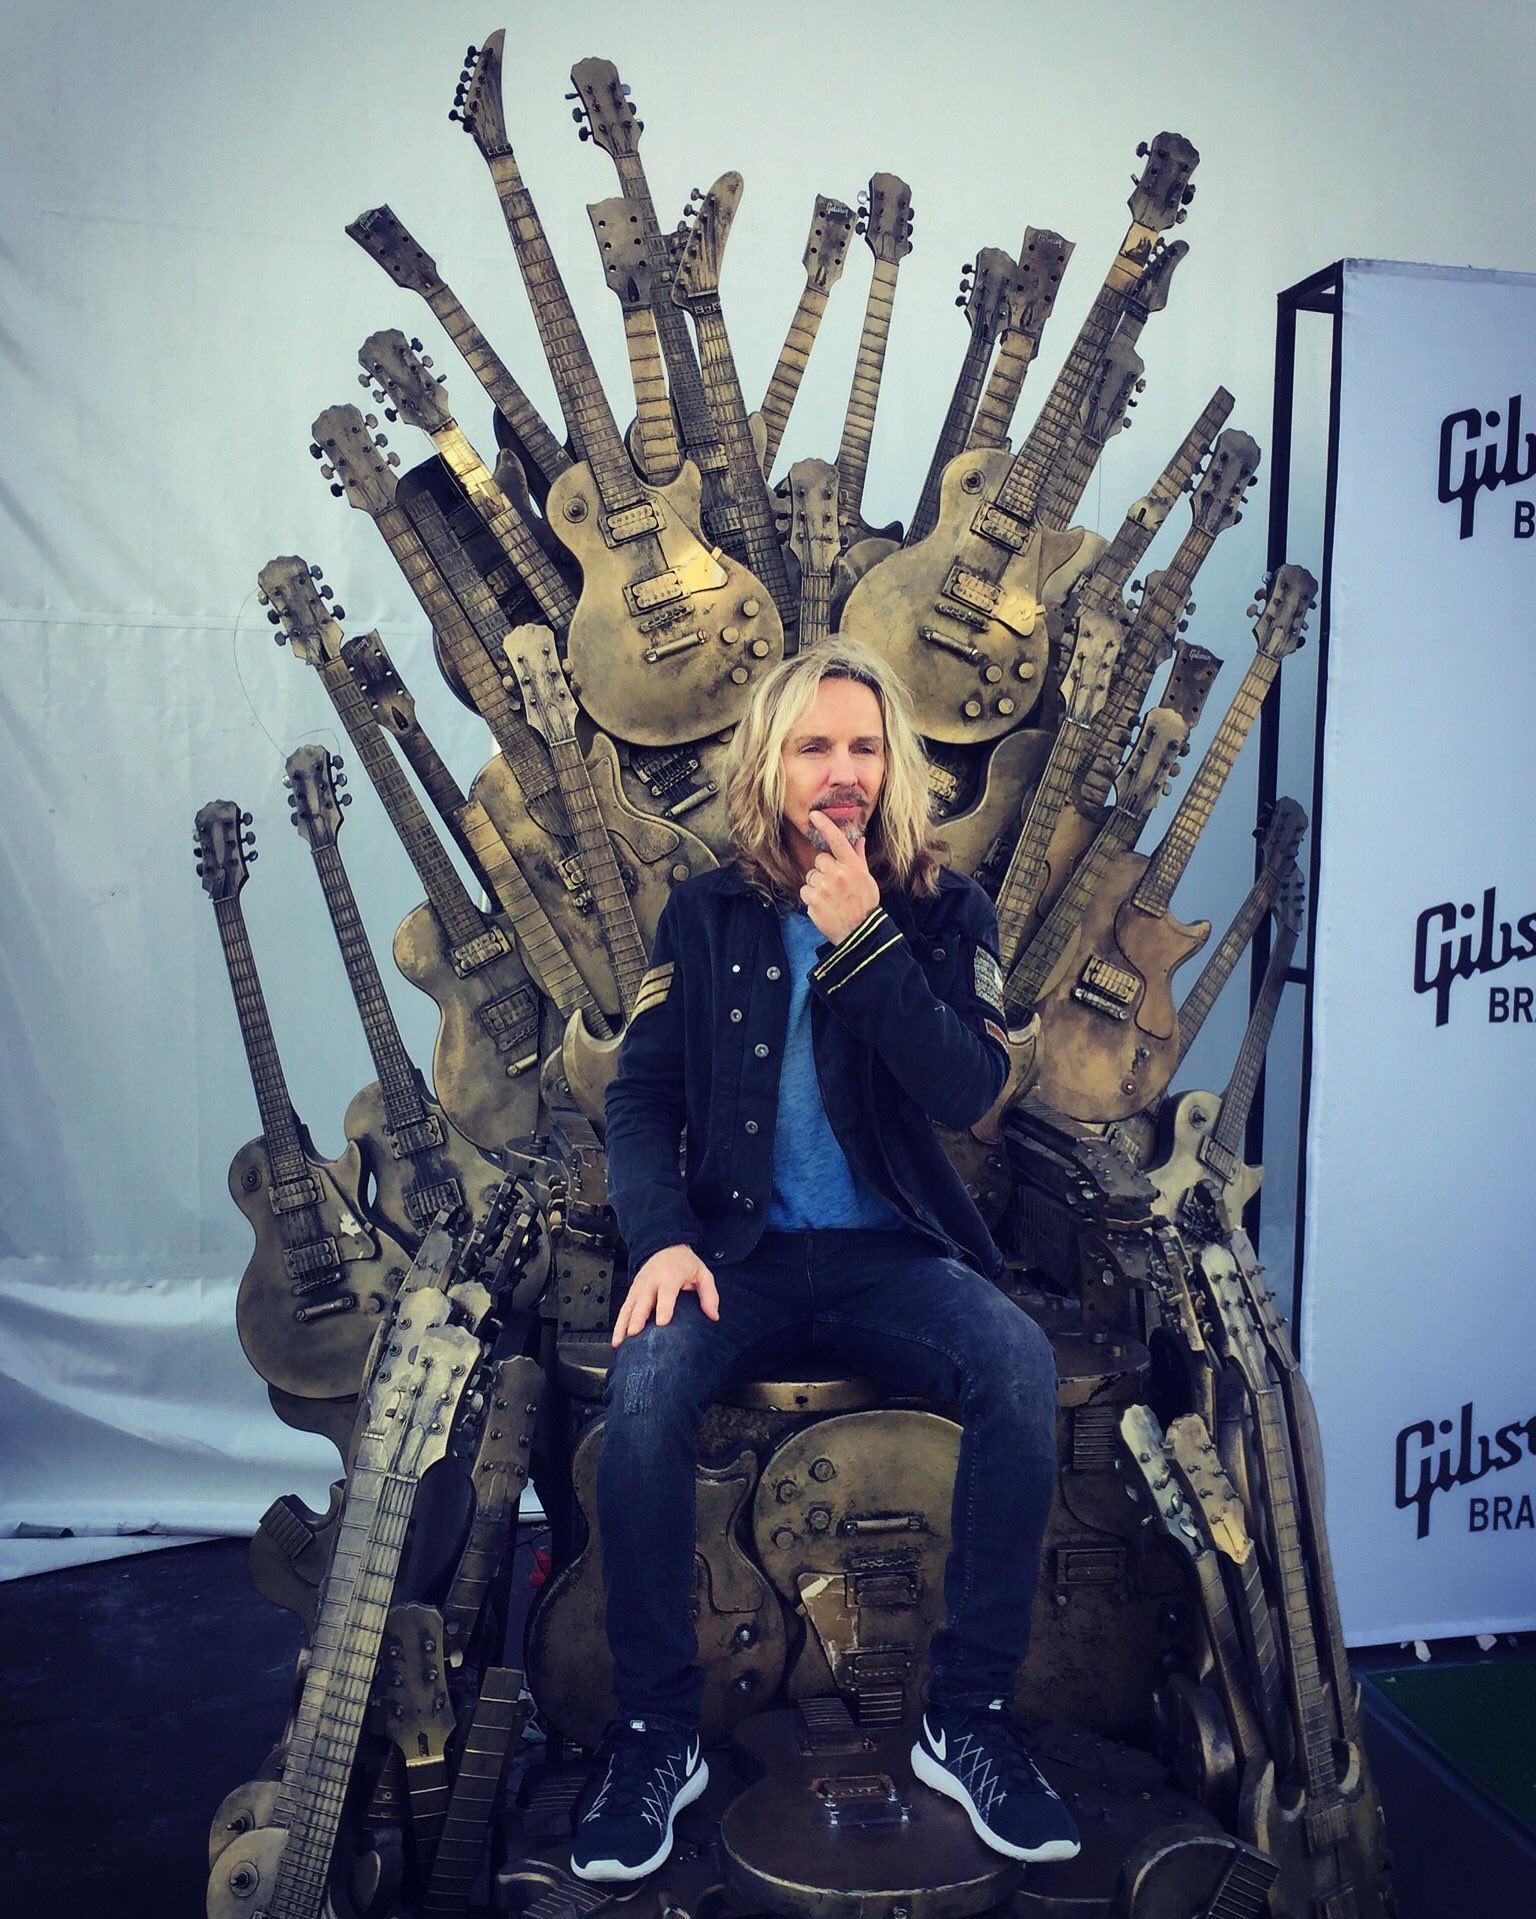 The Renegade atop his throne. #GameOfTones #GibsonCES2017 #CES2017 https://t.co/ruZvuuwhiq